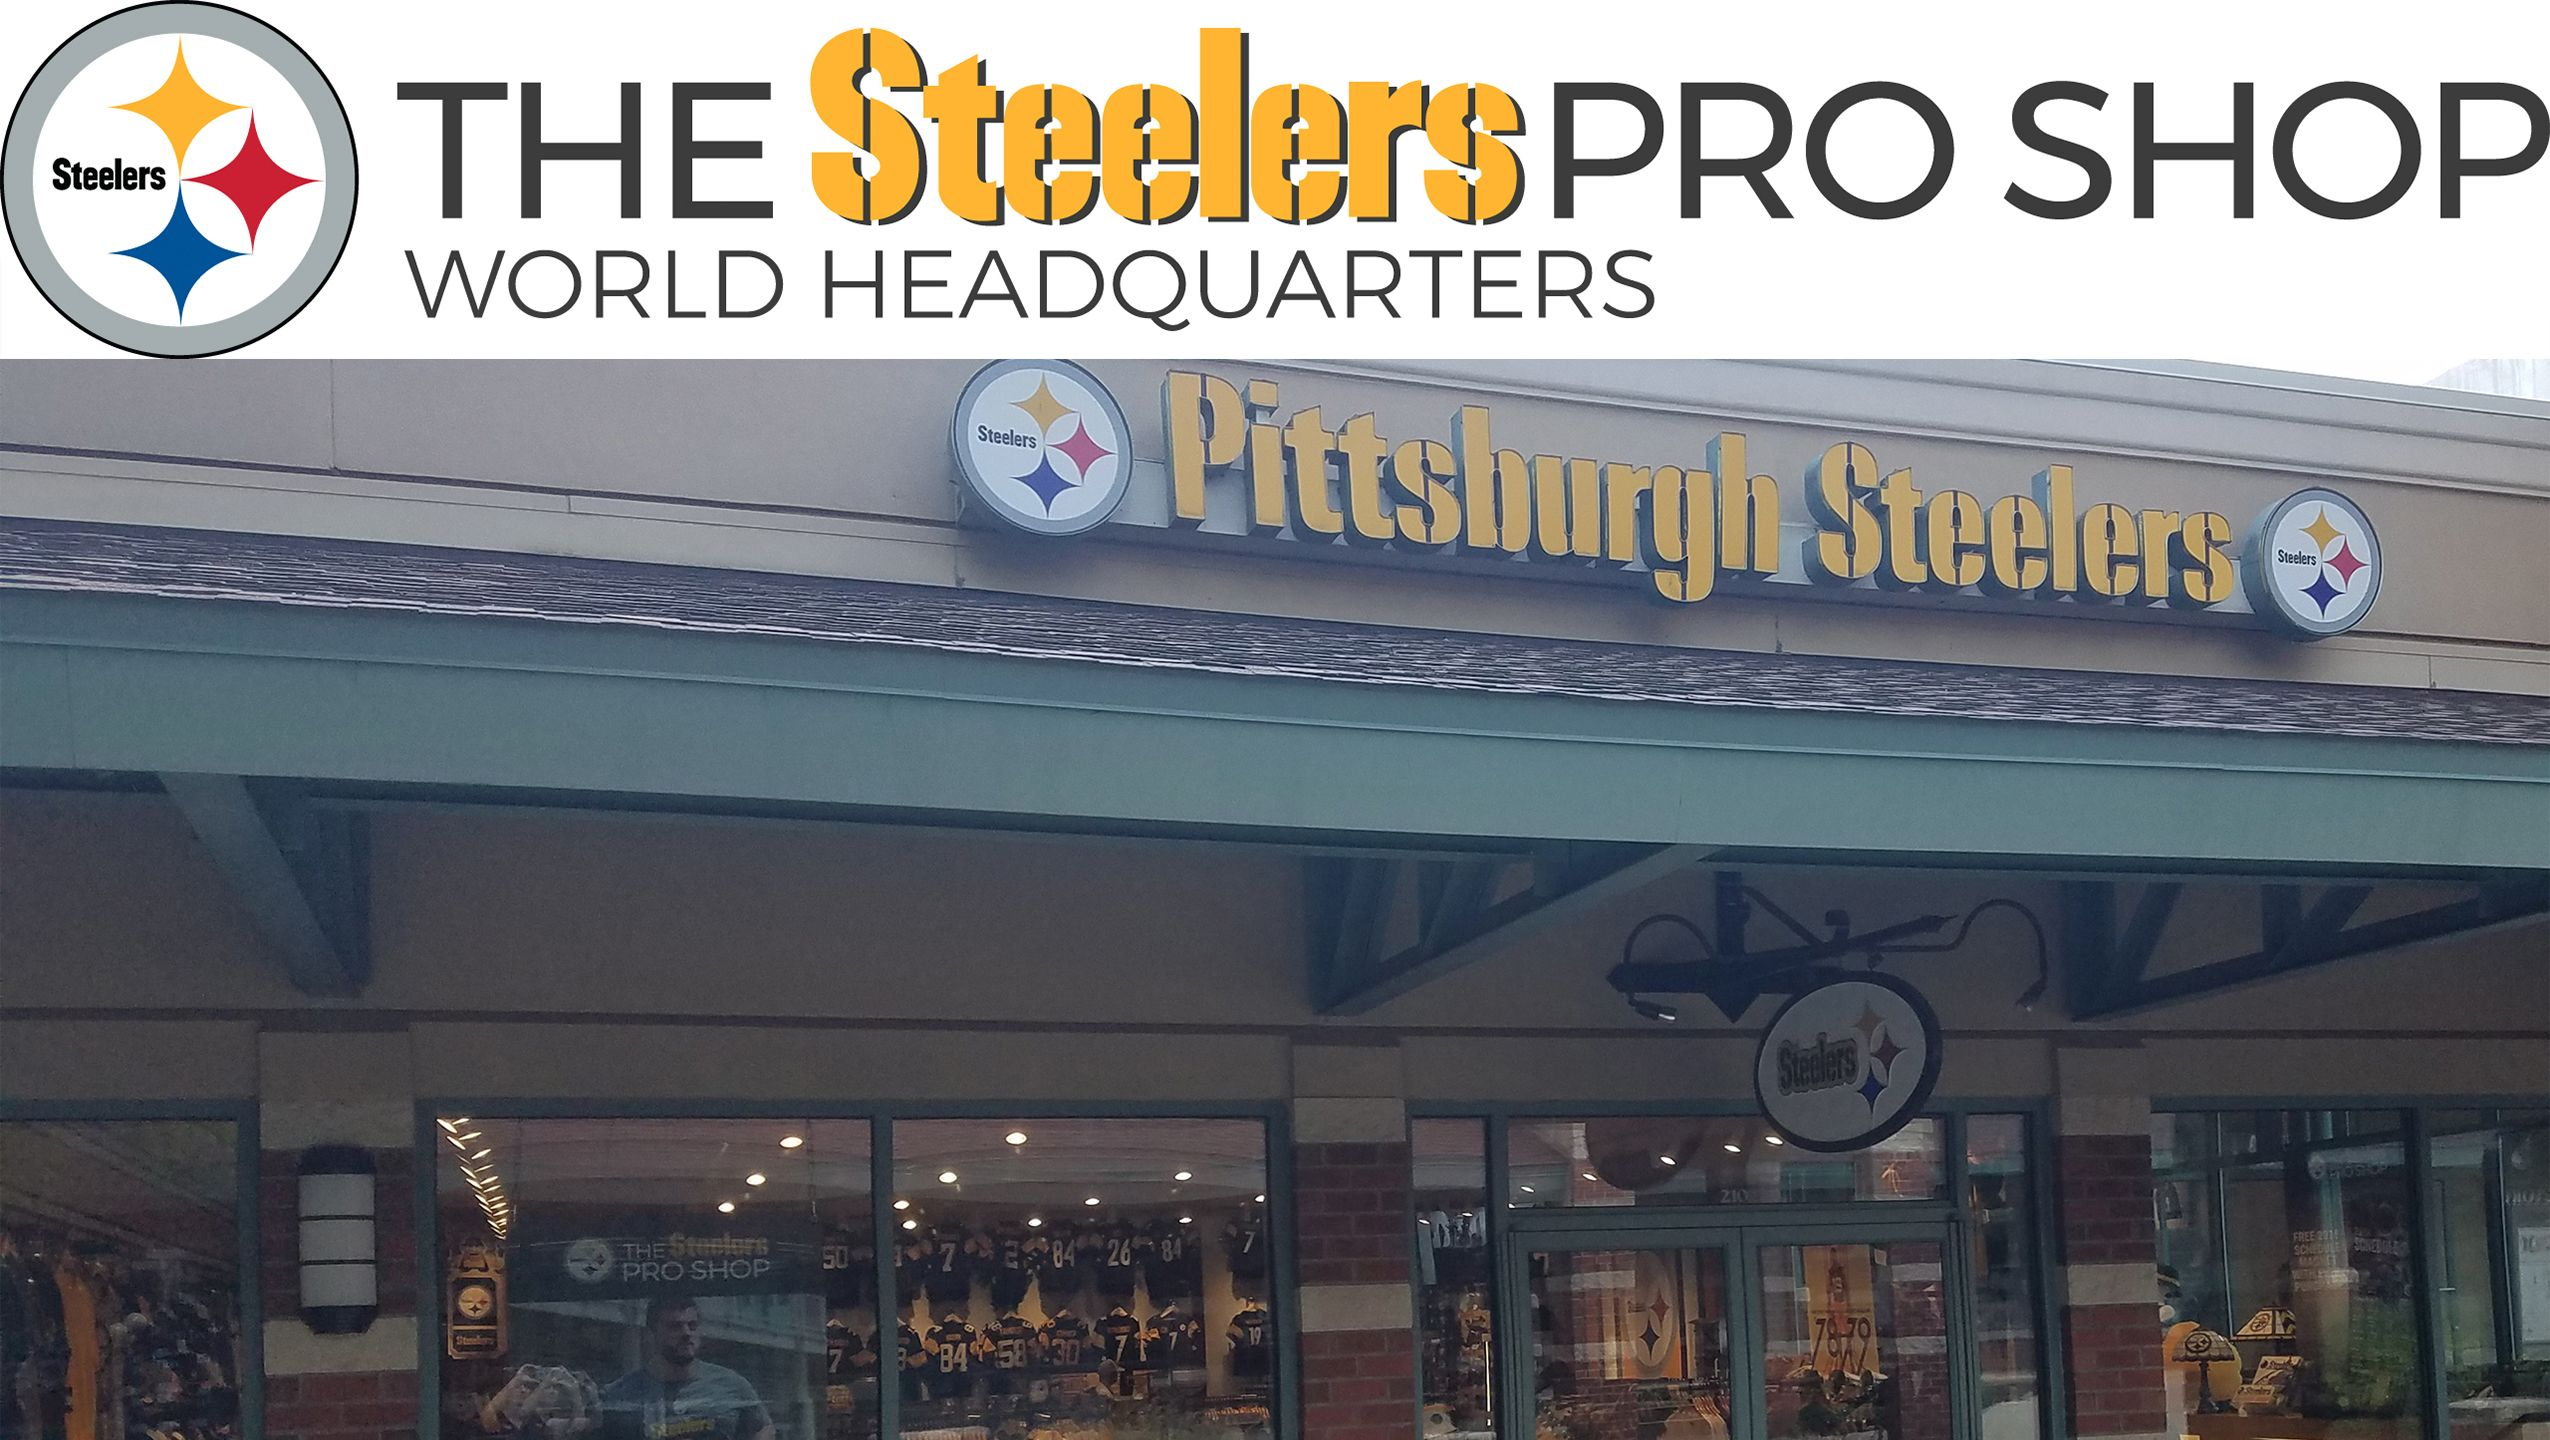 Wednesday, September 12 at Grove City Outlets